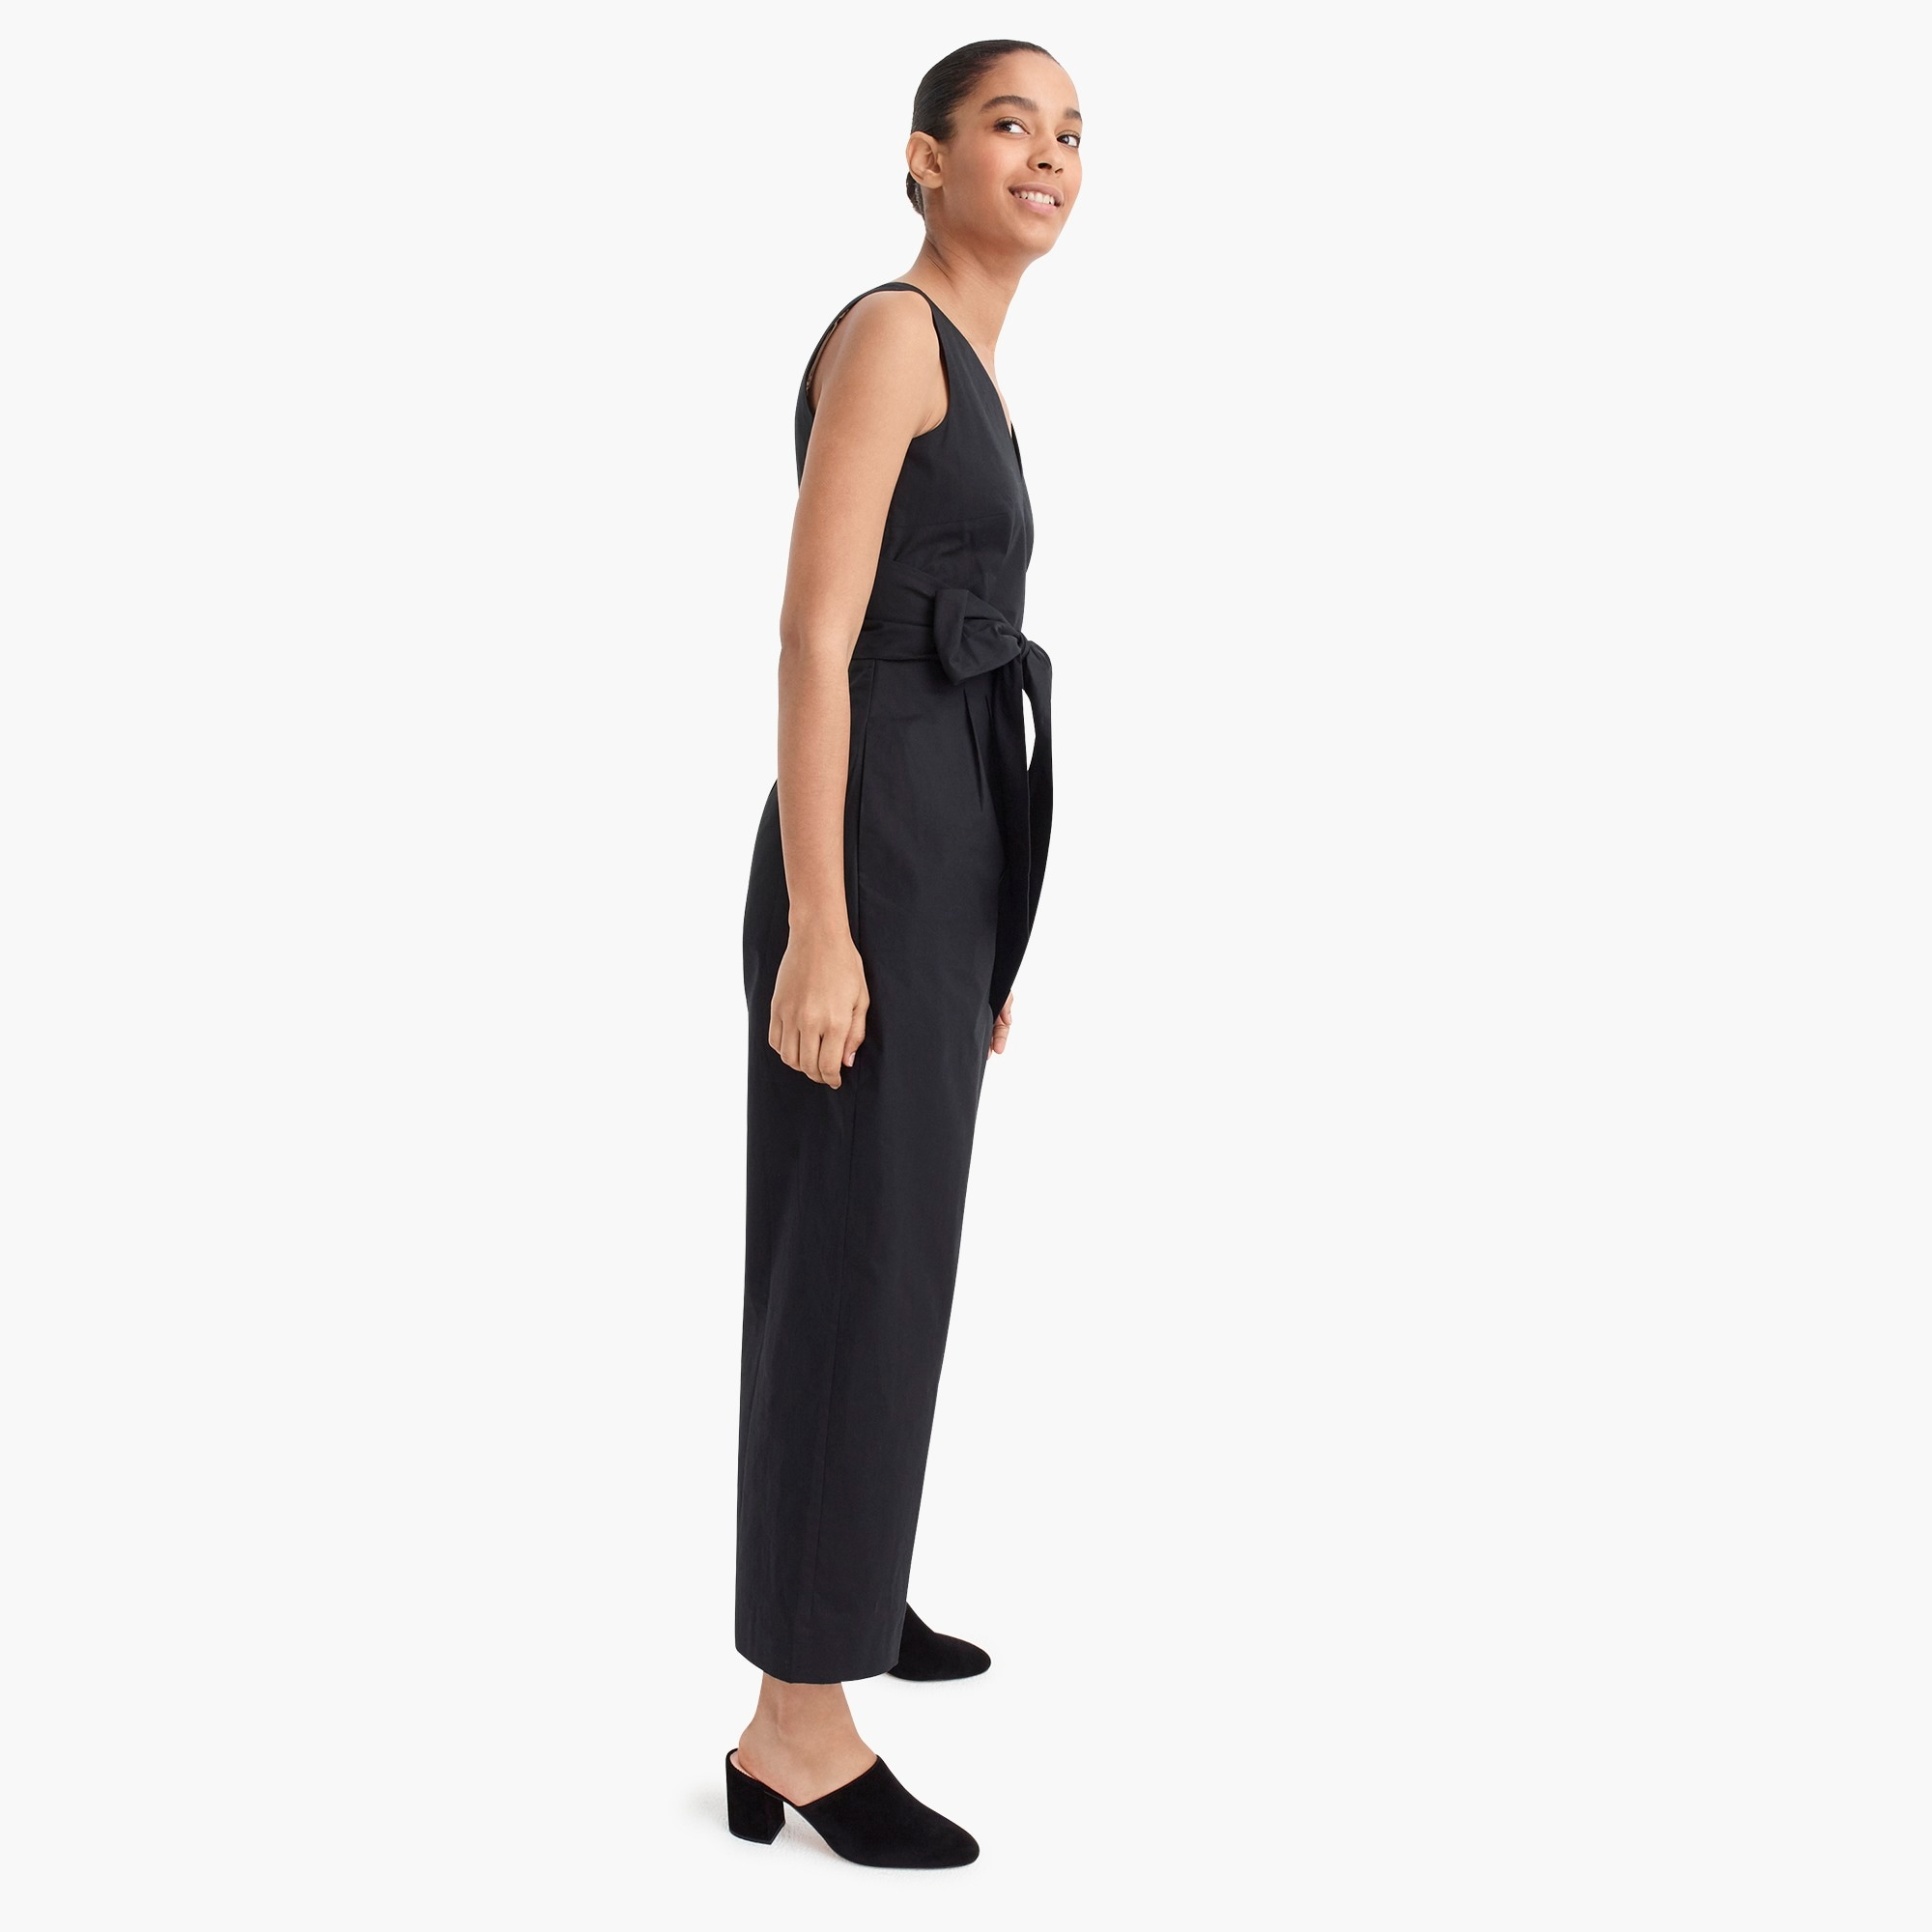 Image 5 for Wrap-tie jumpsuit in stretch poplin